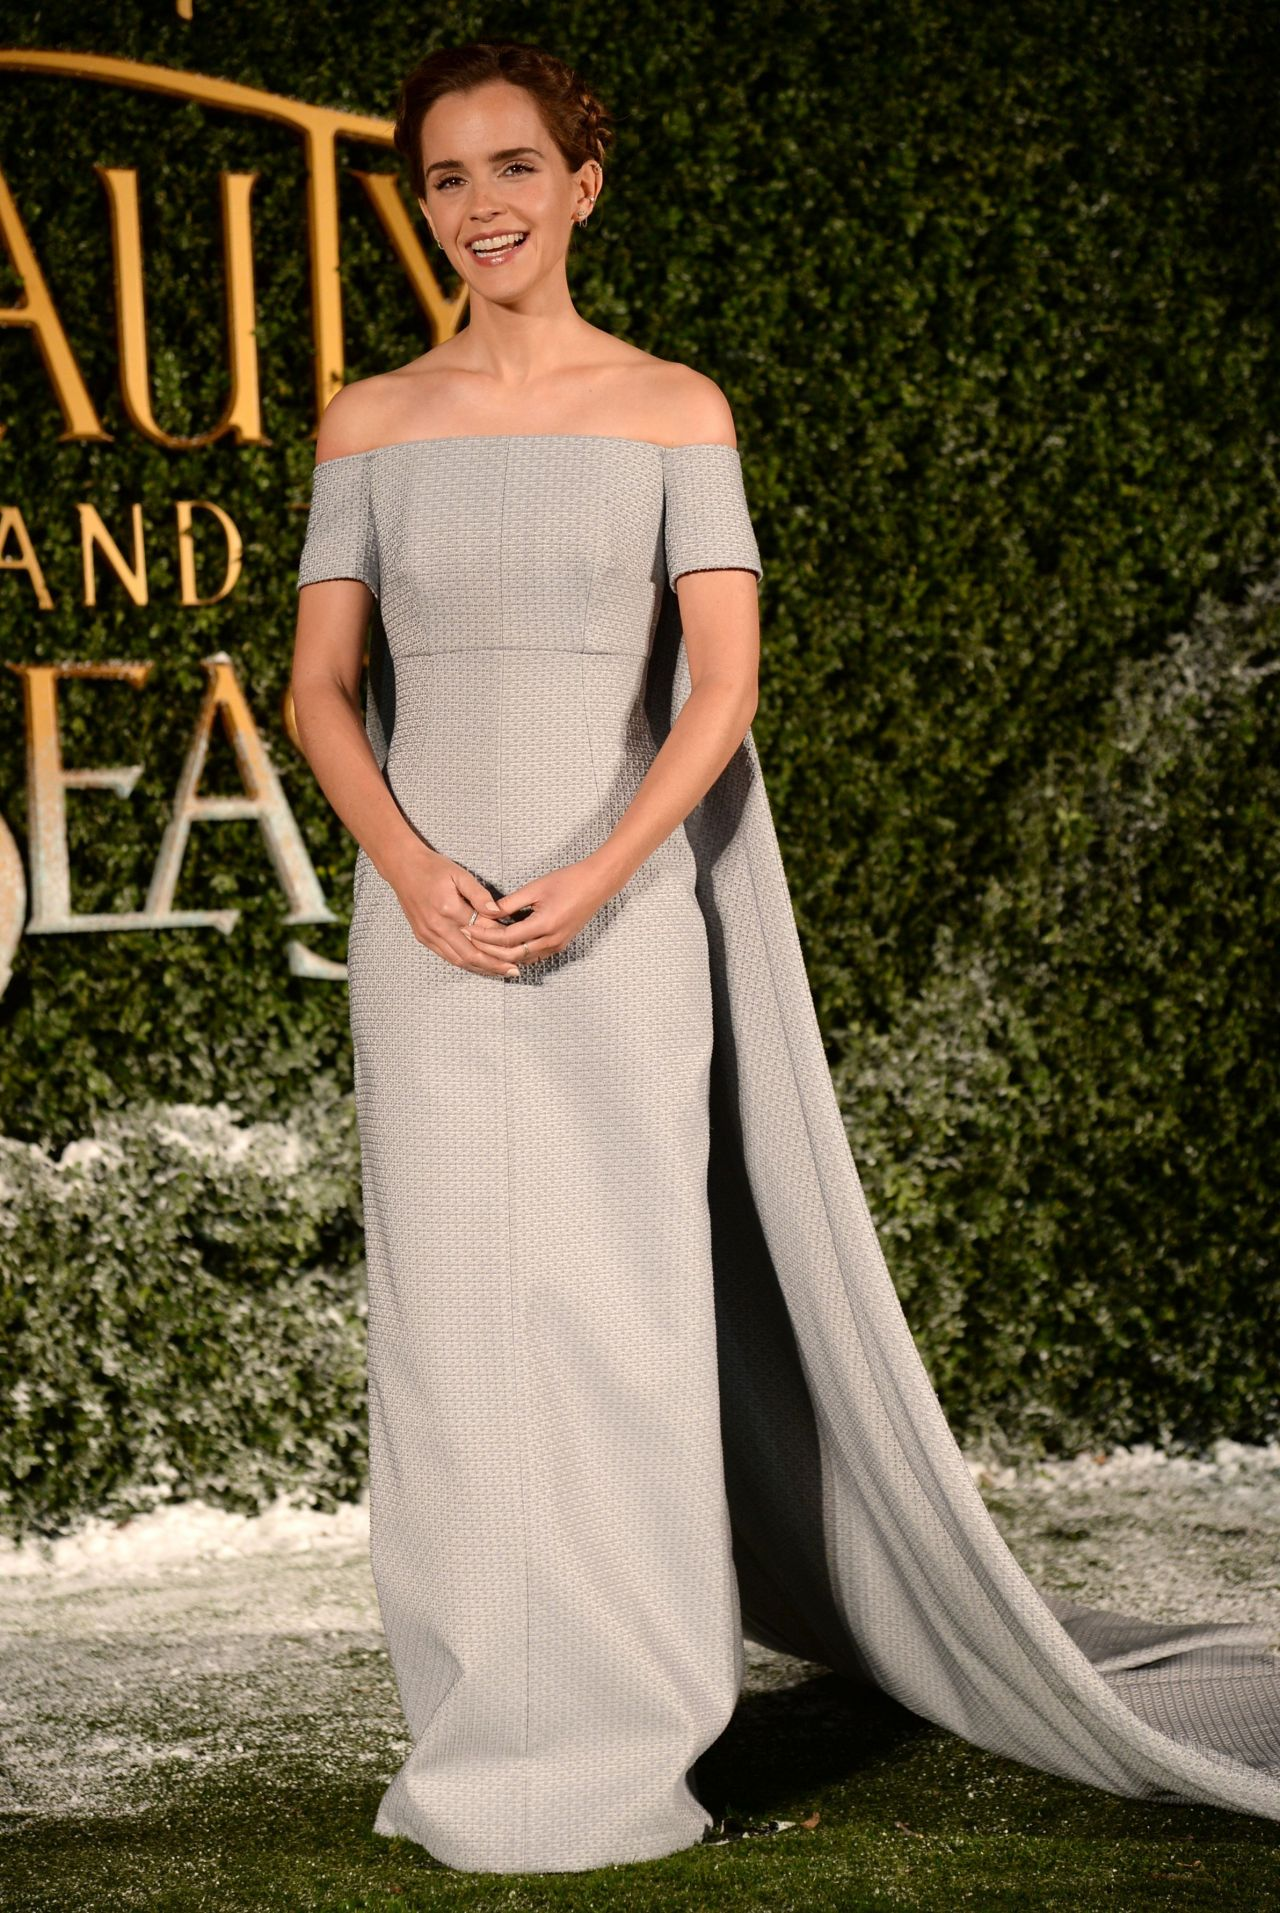 Emma watson beauty and the beast launch event at spencer house in emma watson beauty and the beast launch event at spencer house in london 2 23 2017 22g 12801913 star style pinterest emma watson and celebs ombrellifo Images